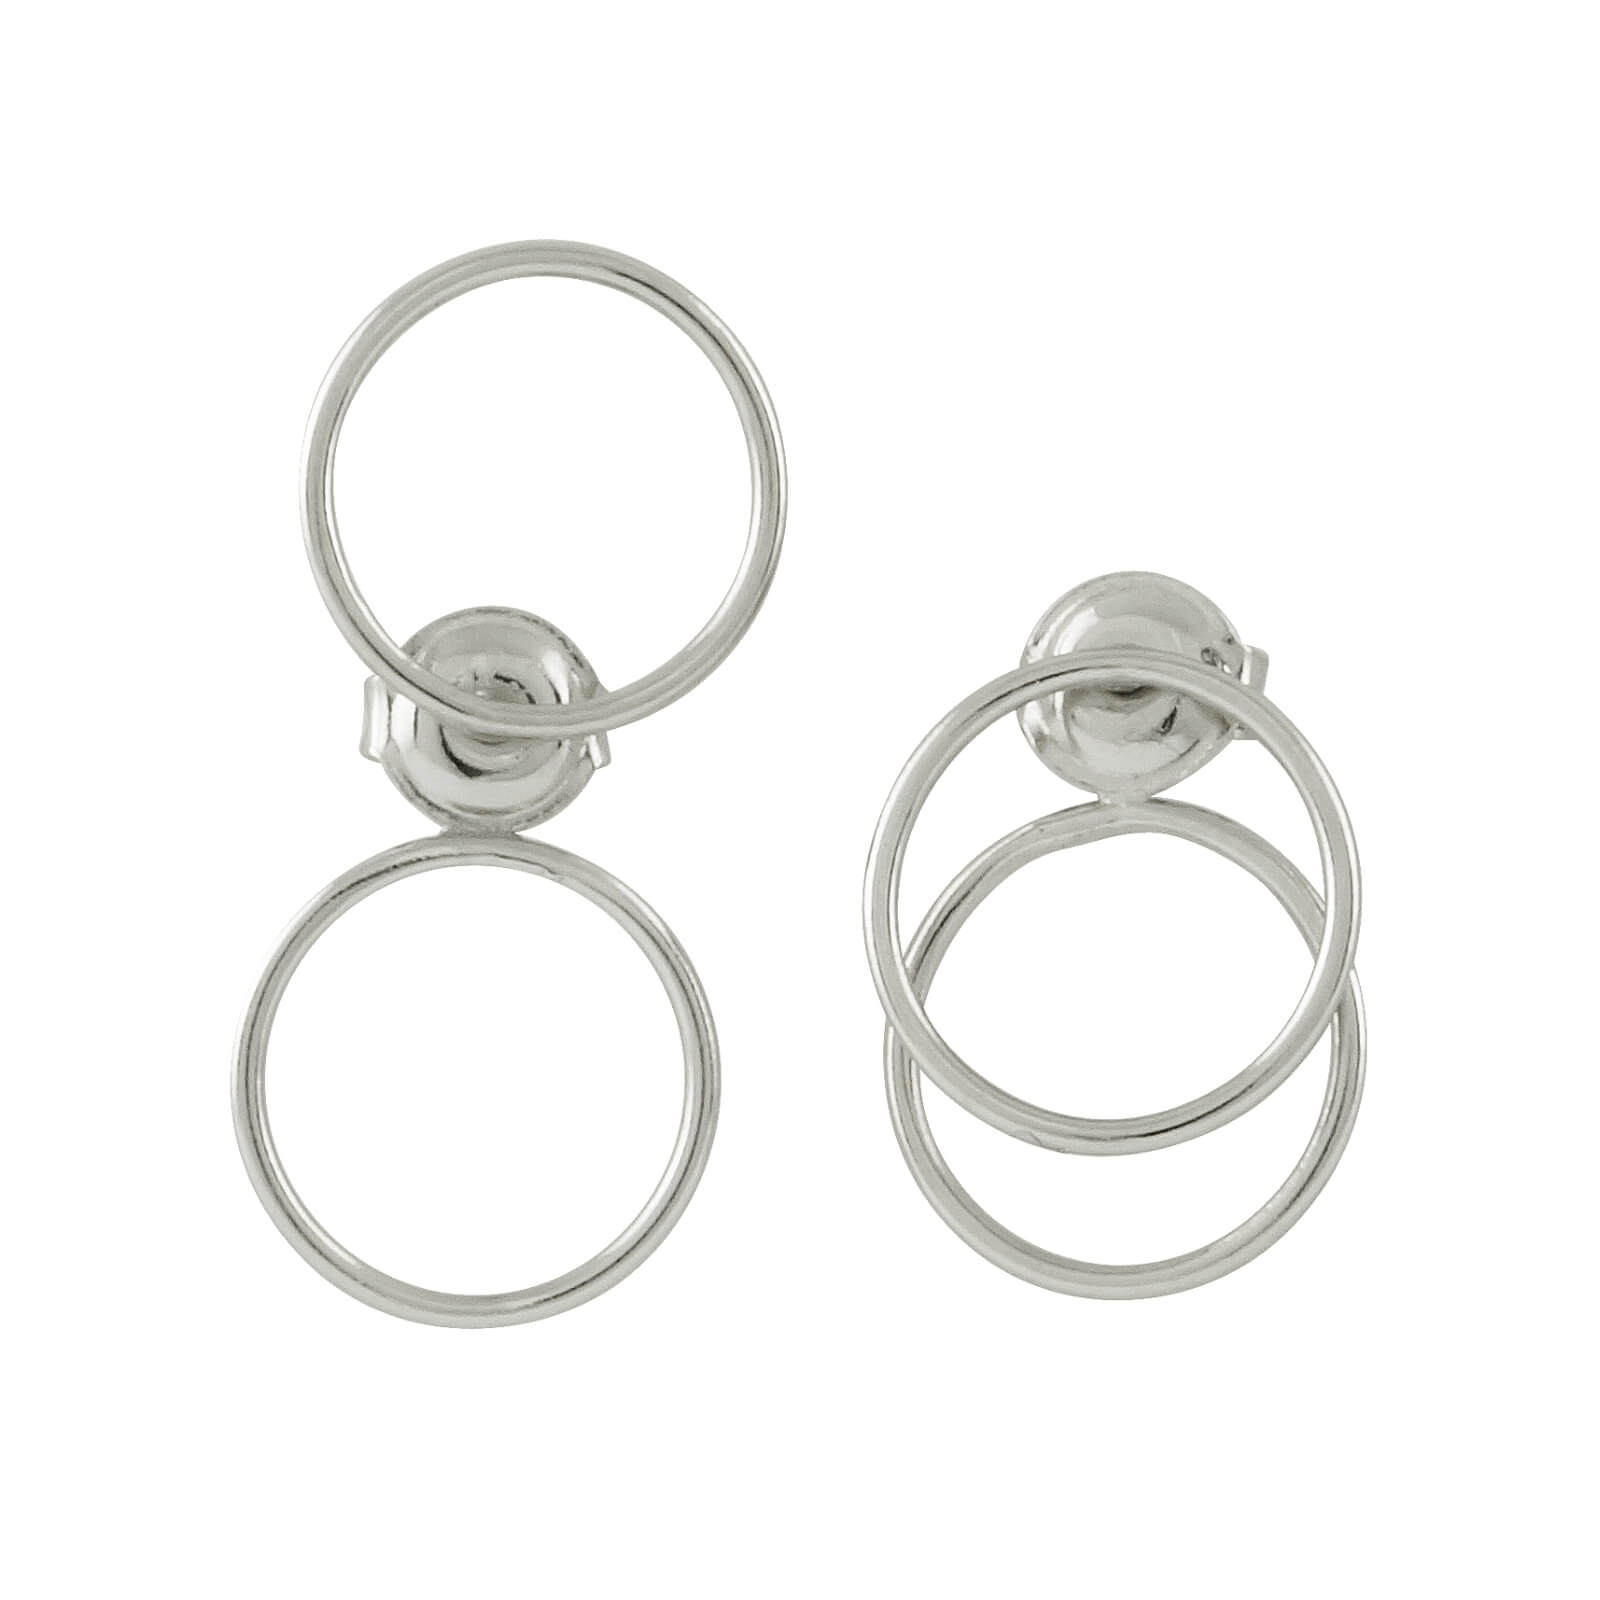 circle free hoop earrings silver kill dolls spirit triple